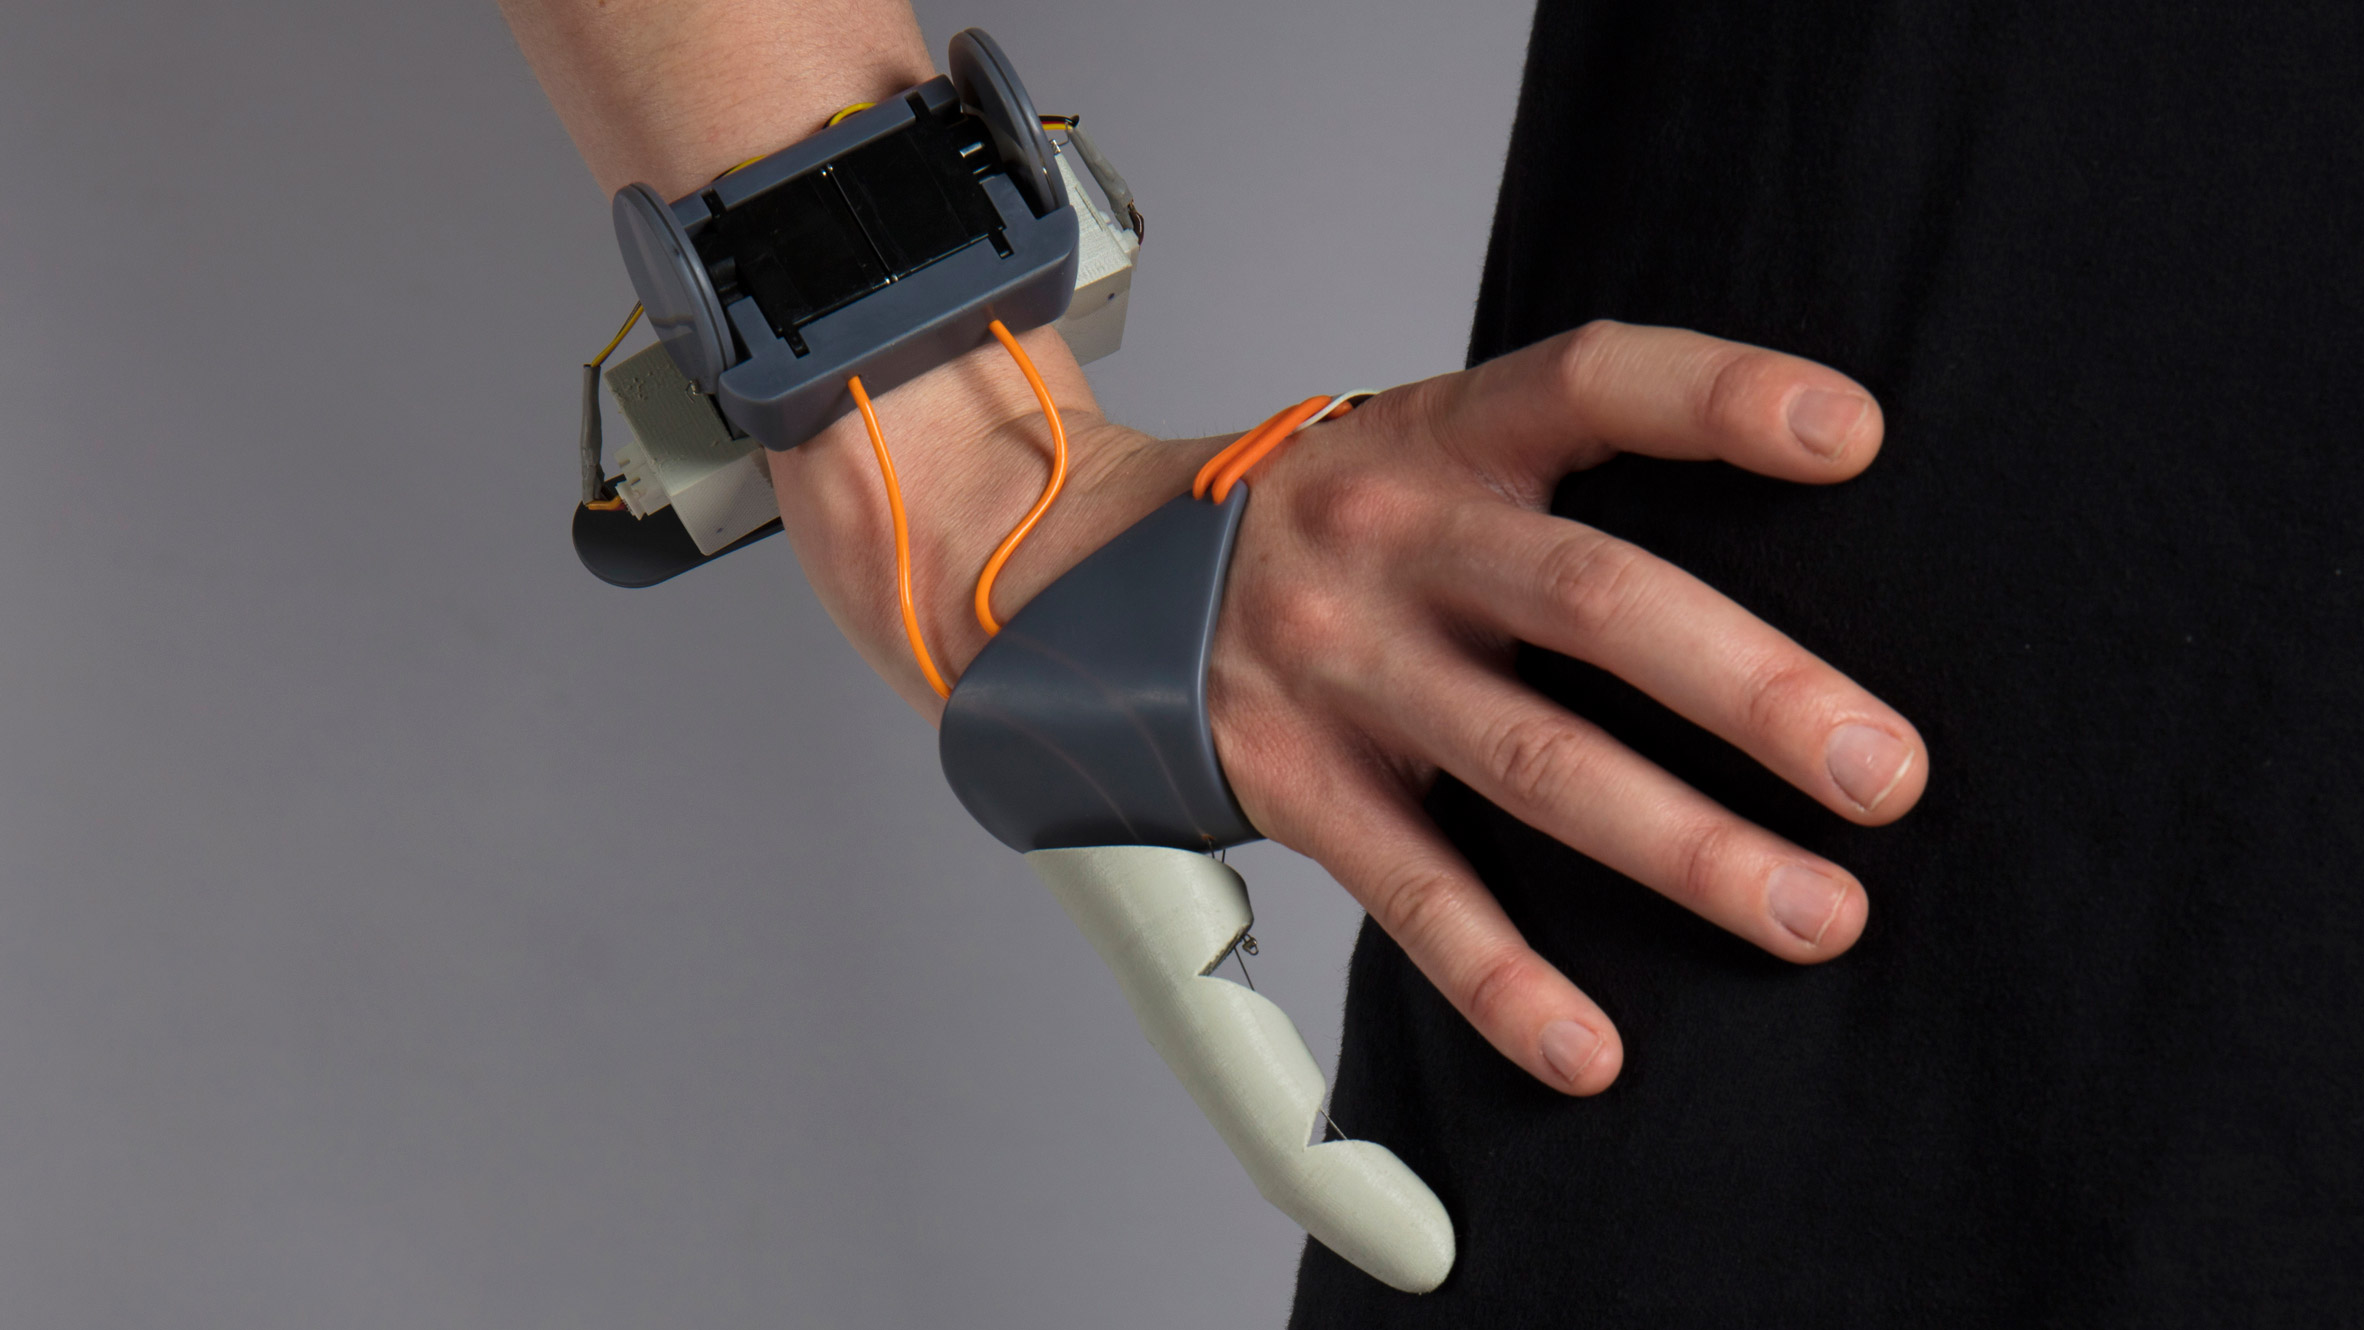 Controllable Third Thumb lets wearers extend their natural abilities